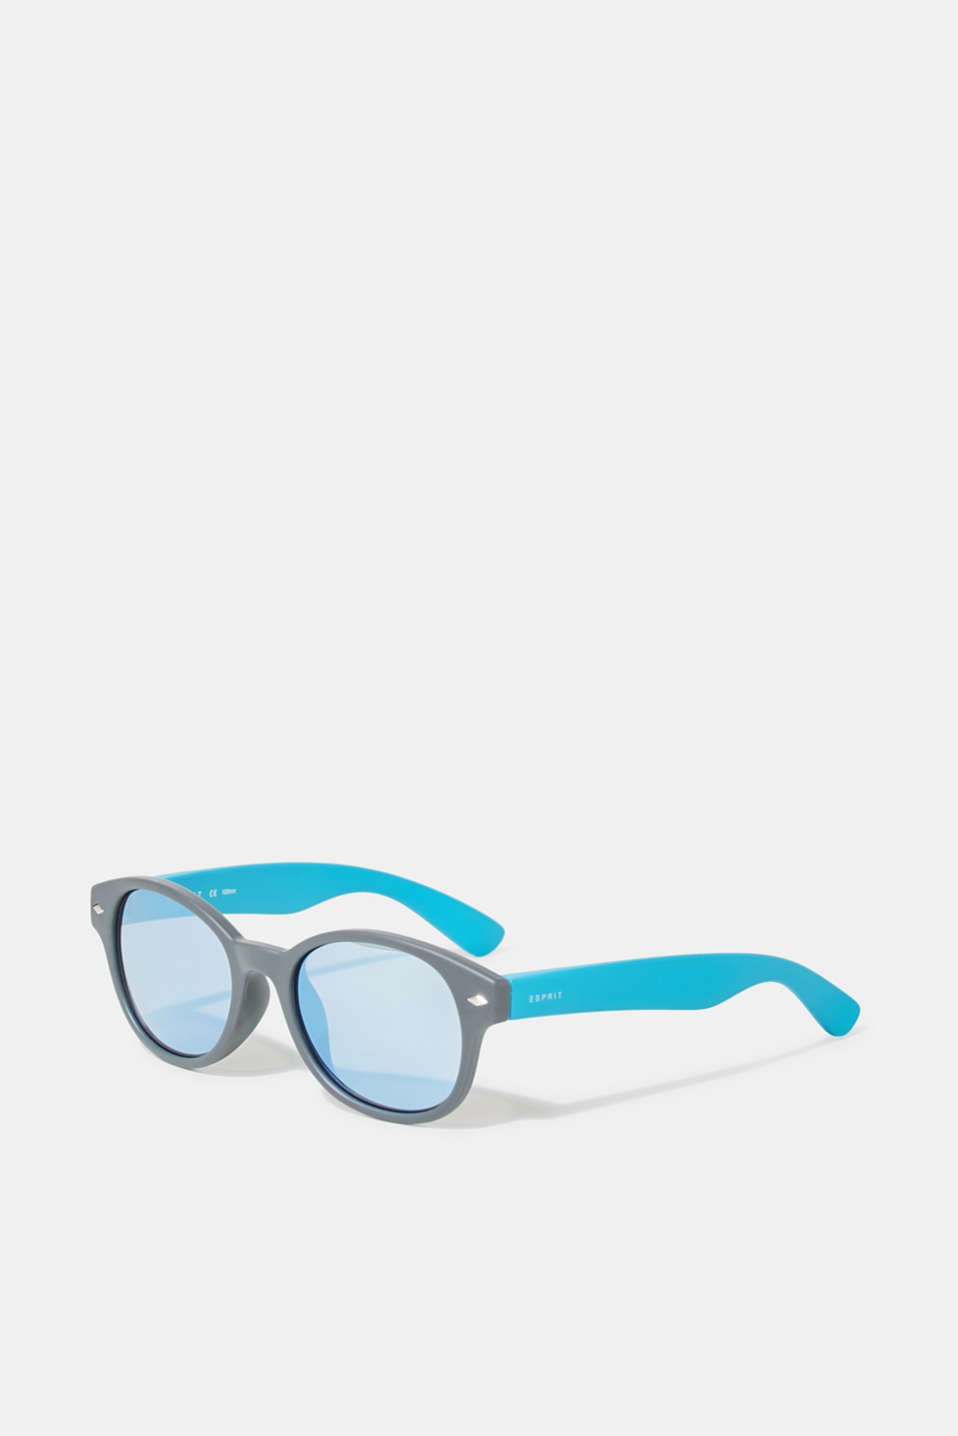 Esprit - Kids' sunglasses with mirrored lenses